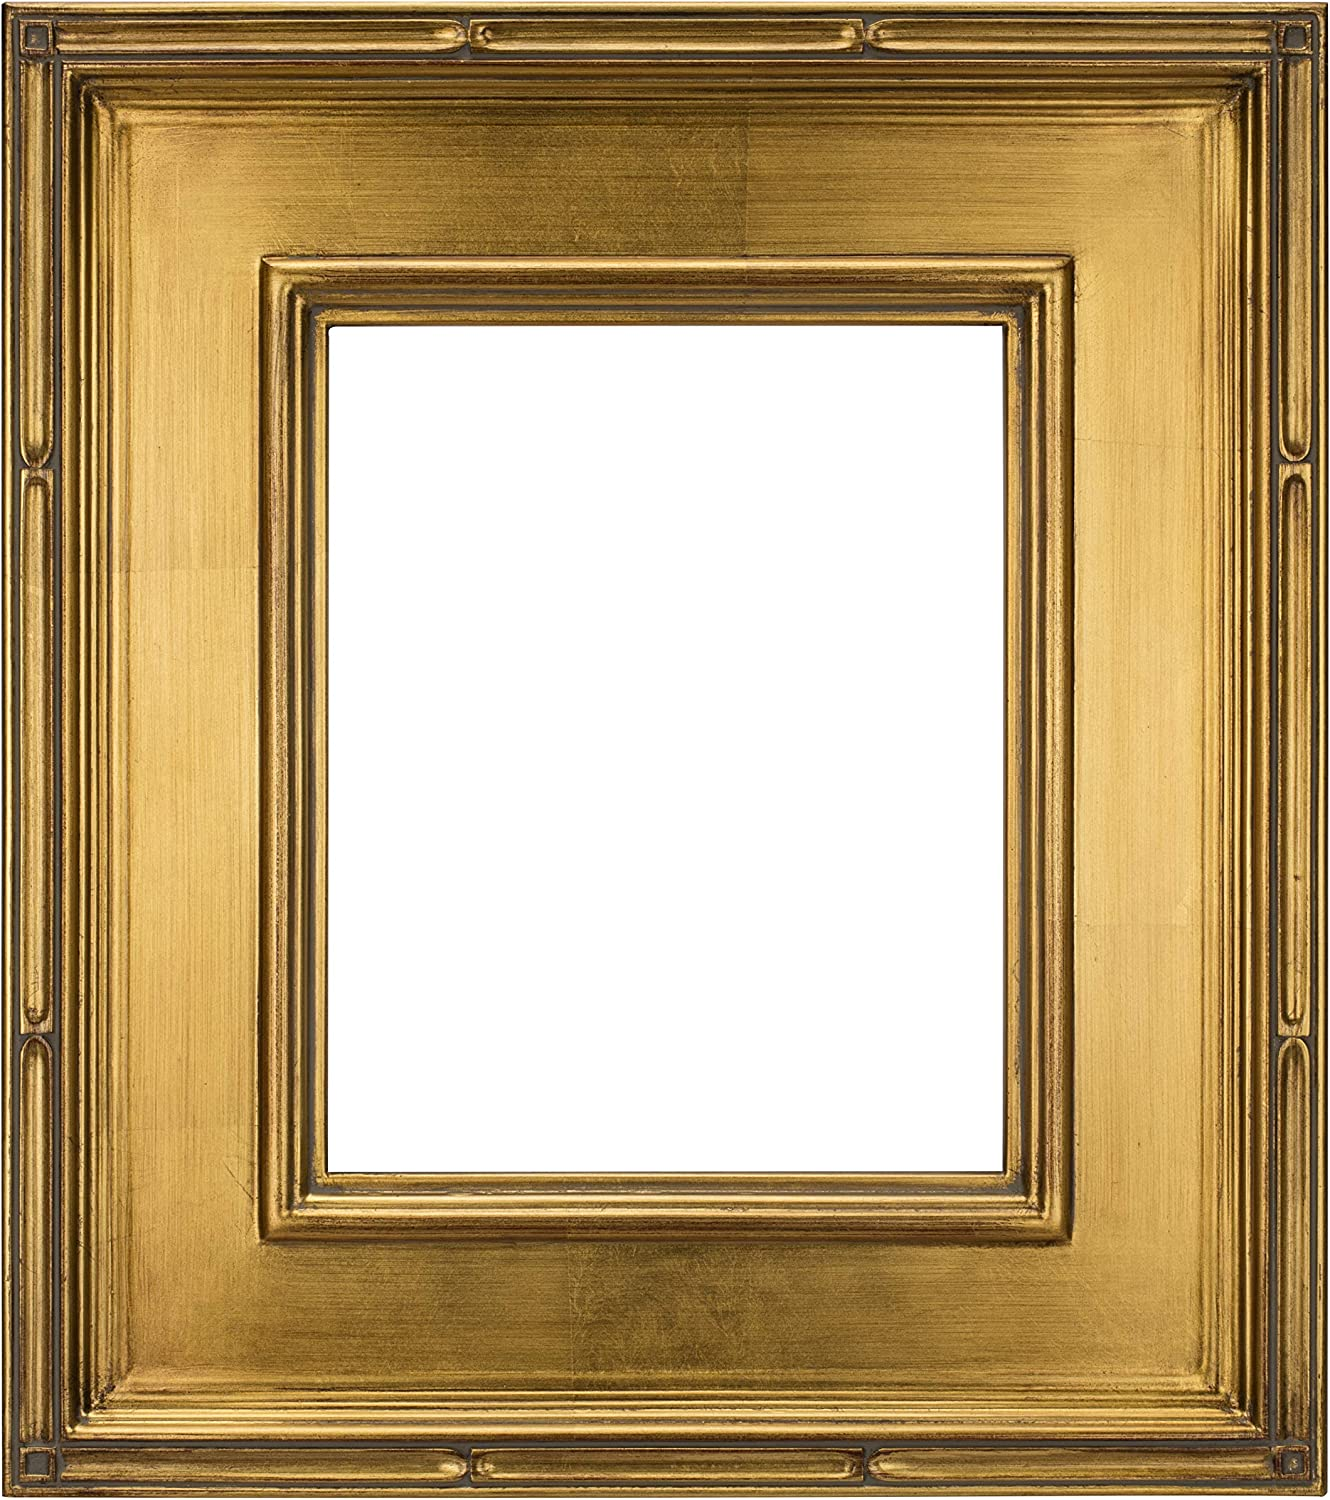 Museum Quality Gold  Leaf frame size 20x24 inches